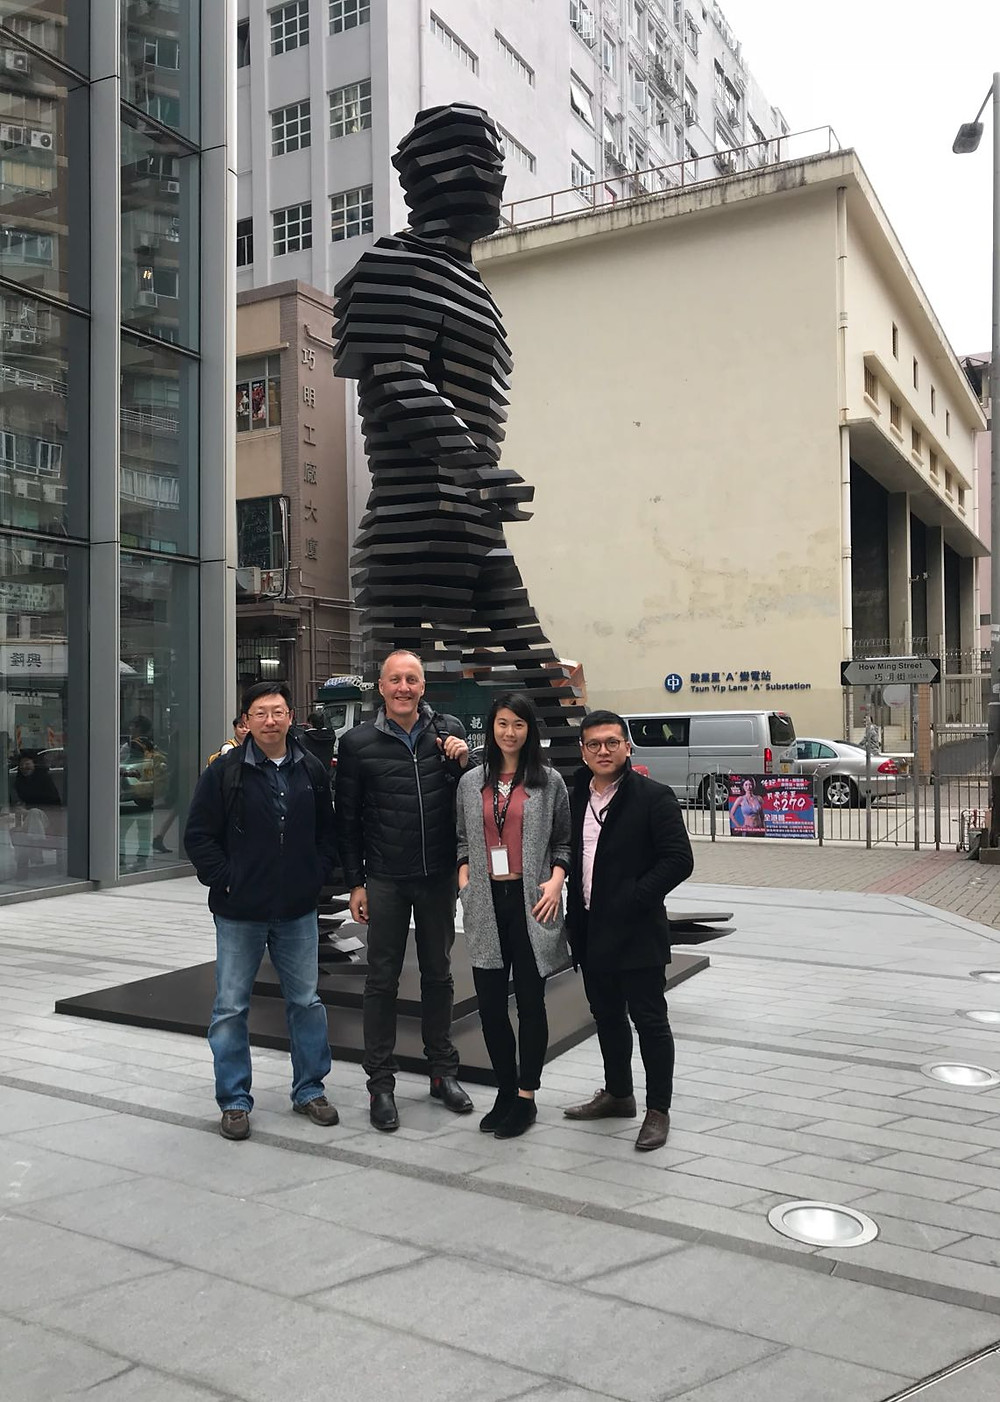 Simon Ng, Jim Walker, Angie Chao and Chris Leung at The Walking Man in Hong Kong, appropriately outside the Mott Macdonald offices